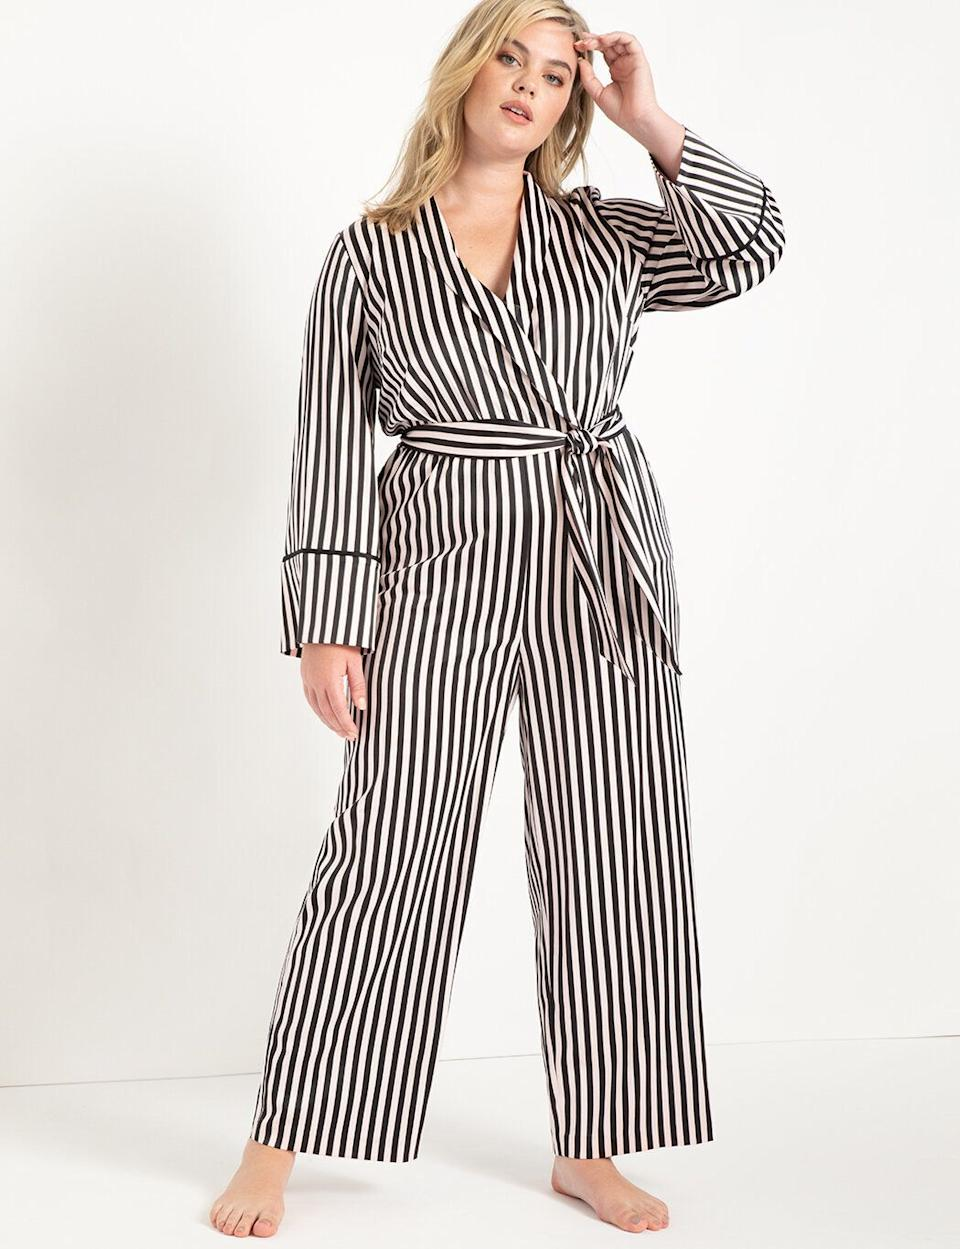 """I've been feeling really burned out with everything in my closet these days. I'm tired of wearing the same things, but my dressier items just don't make sense much these days. I noticed that <a href=""""https://fave.co/374oWz5"""" target=""""_blank"""" rel=""""noopener noreferrer"""">Eloquii is having a massive Black Friday sale for half-off everything</a> (and with special markdowns on select items), so I'm using the sale as an excuse to stock up on some cuter loungewear. I love the sleek-yet-professional look of <a href=""""https://fave.co/374oWz5"""" target=""""_blank"""" rel=""""noopener noreferrer"""">this satin lounge jumpsuit</a> and can't wait to wear it on Zoom calls.<strong> - Brittany Nims, head of HuffPost Finds</strong>"""